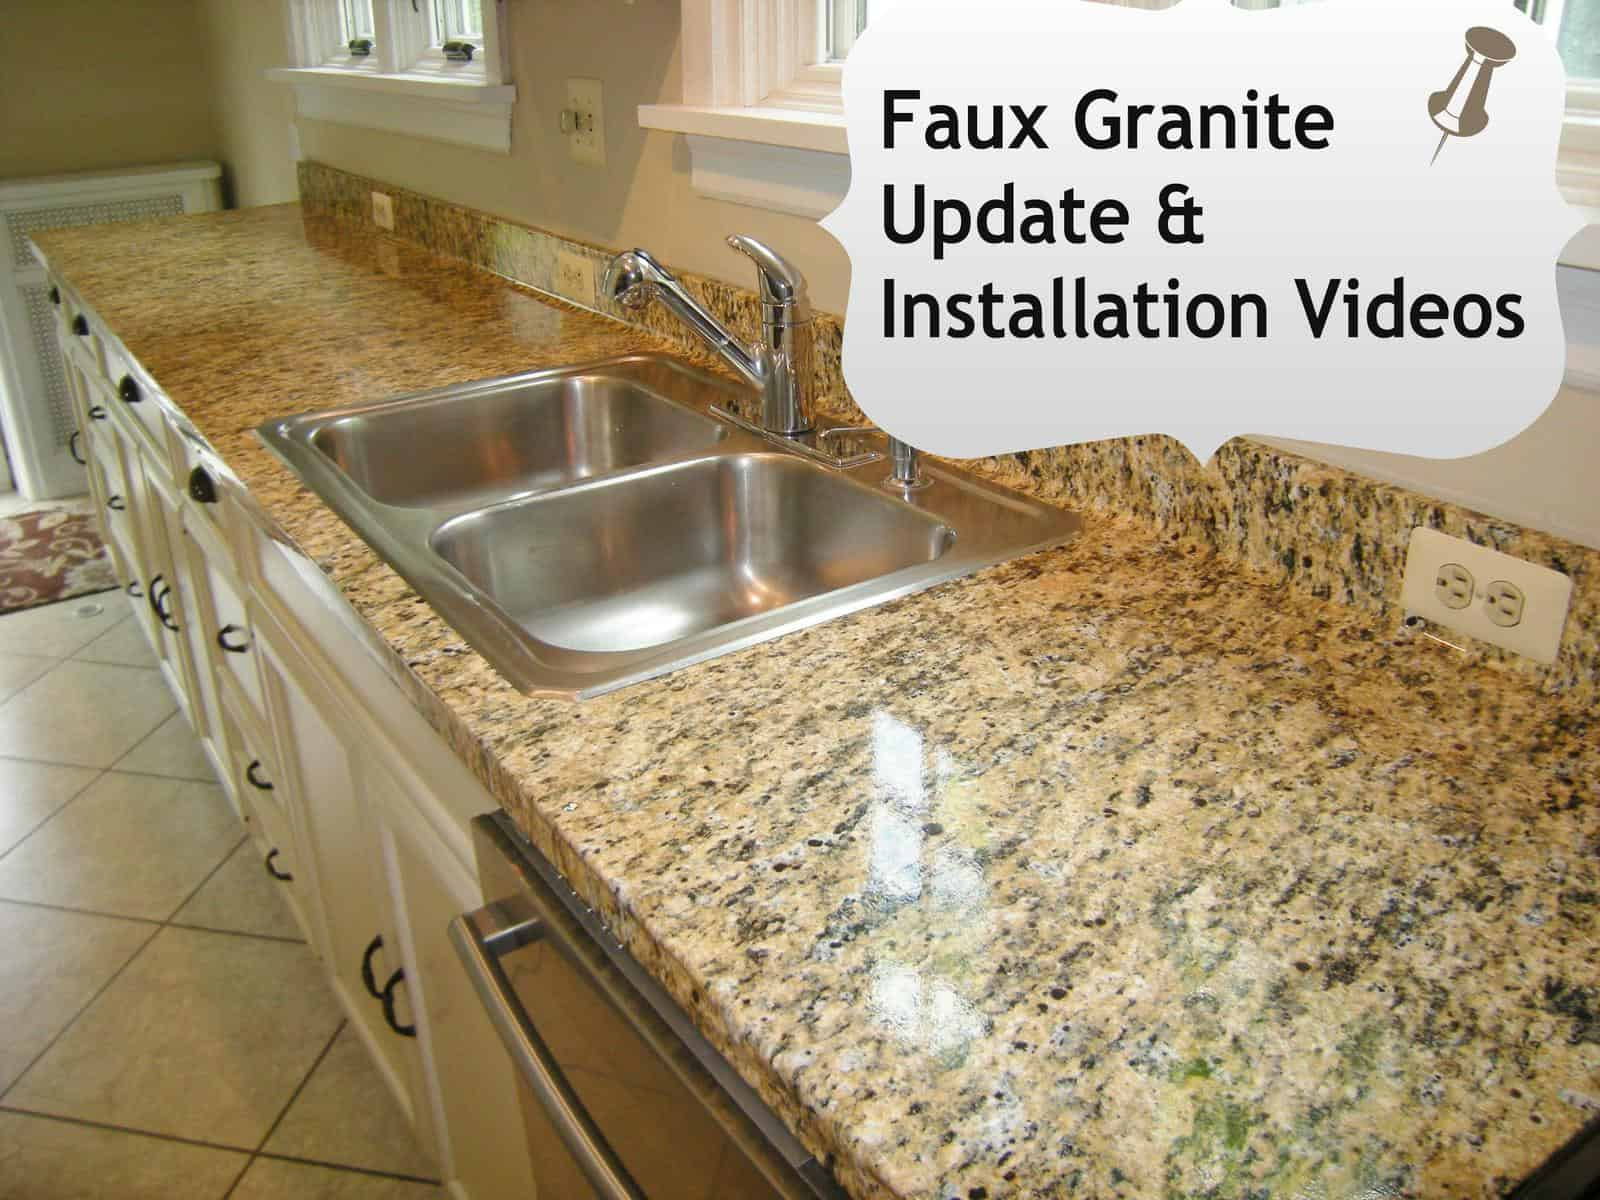 Faux Granite Countertops Cost : Faux Granite- DIY Installation Videos HeartWorkOrg.com